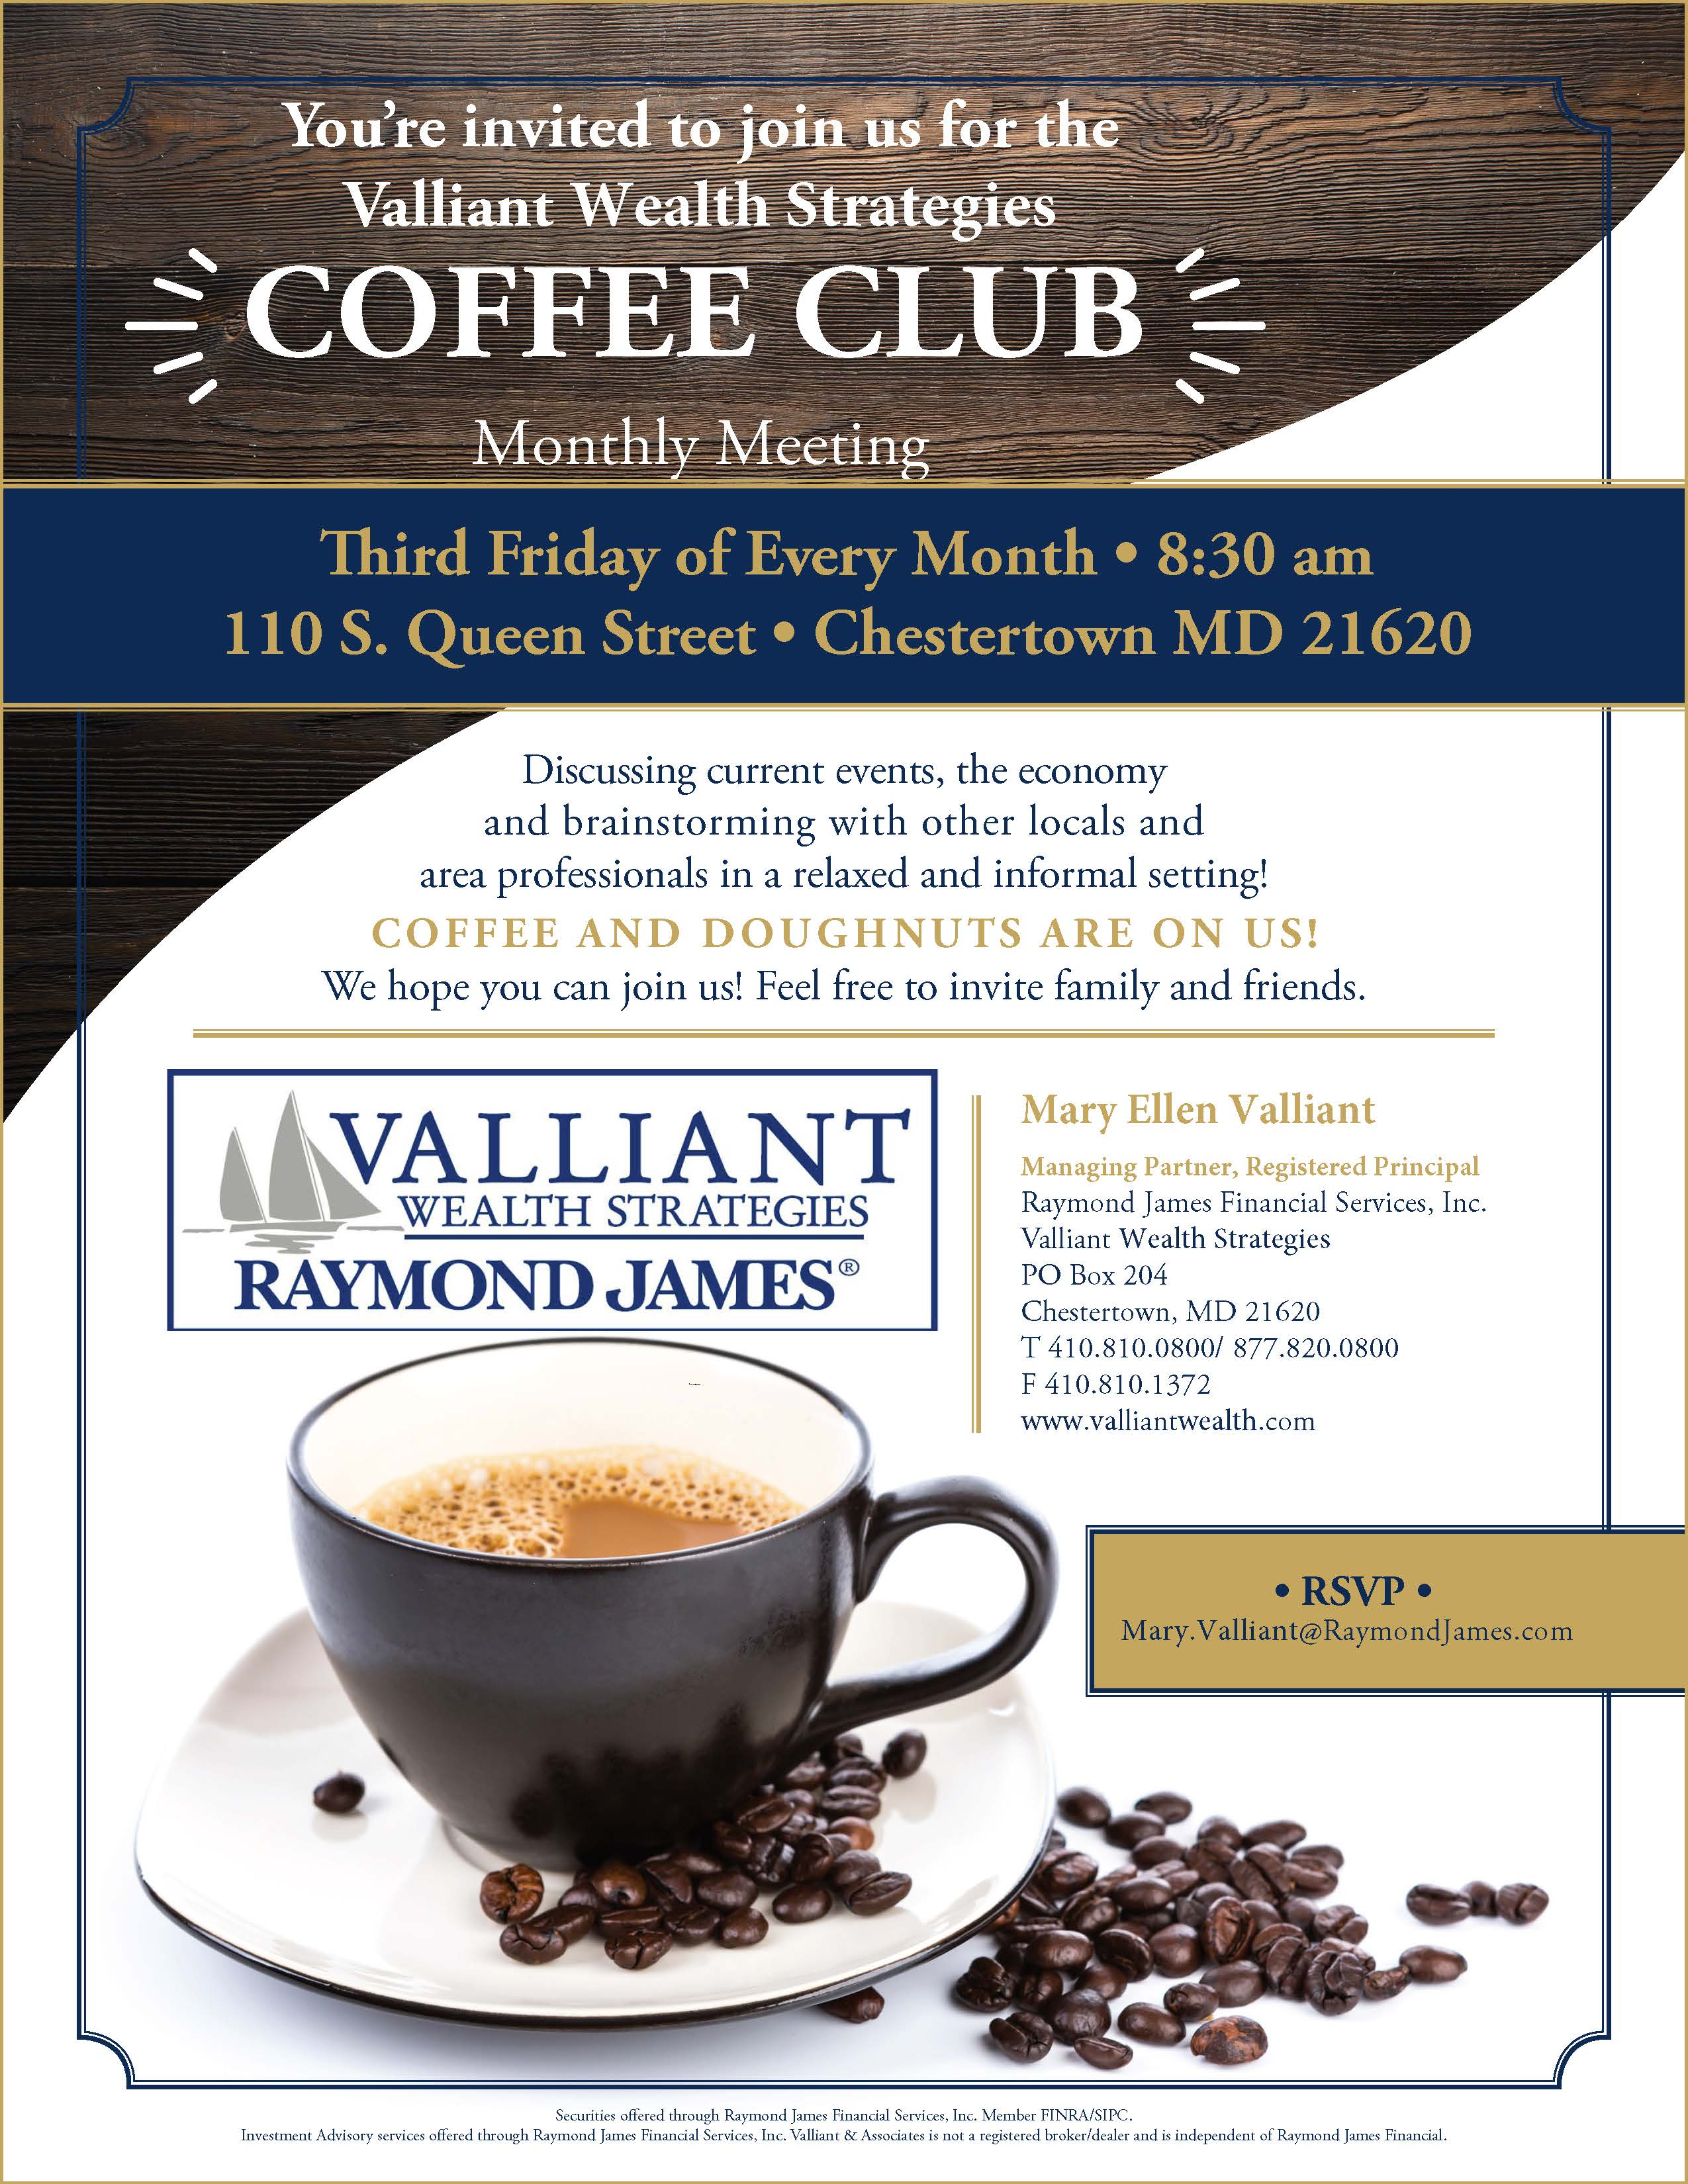 Valliant Wealth Strategies Coffee Club